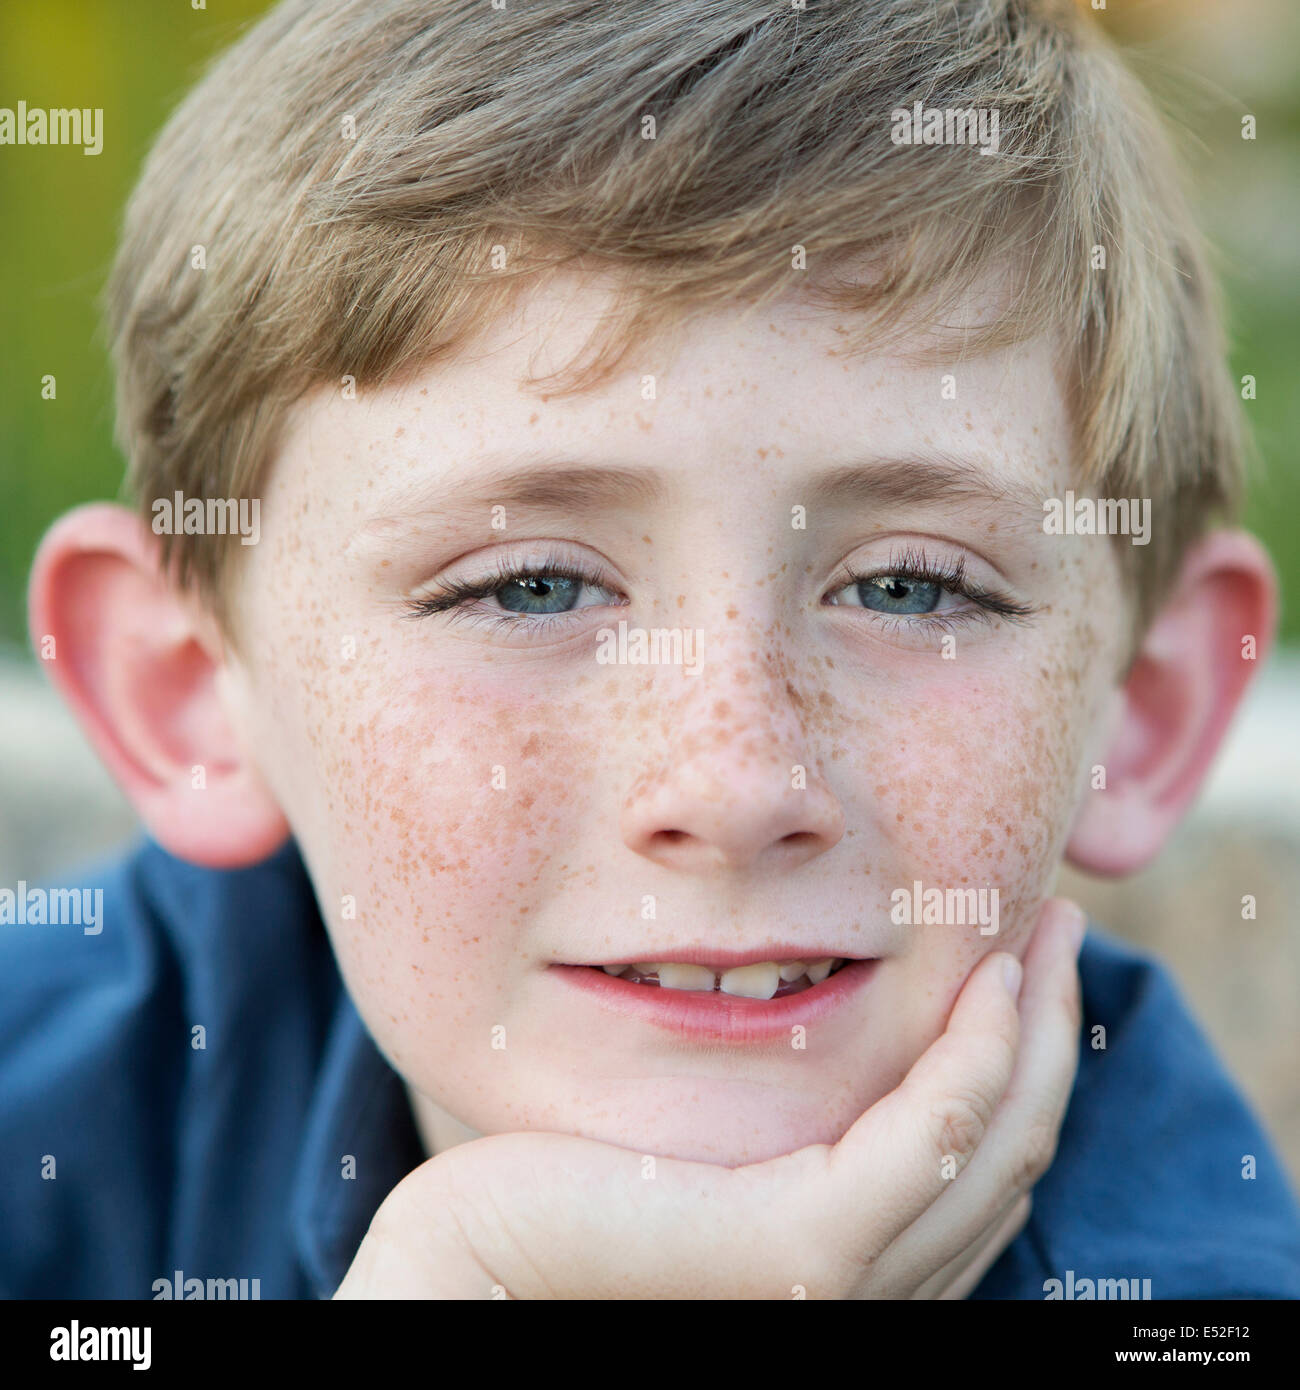 Head and shoulders portrait of a young boy sitting with his chin resting on his hand. - Stock Image